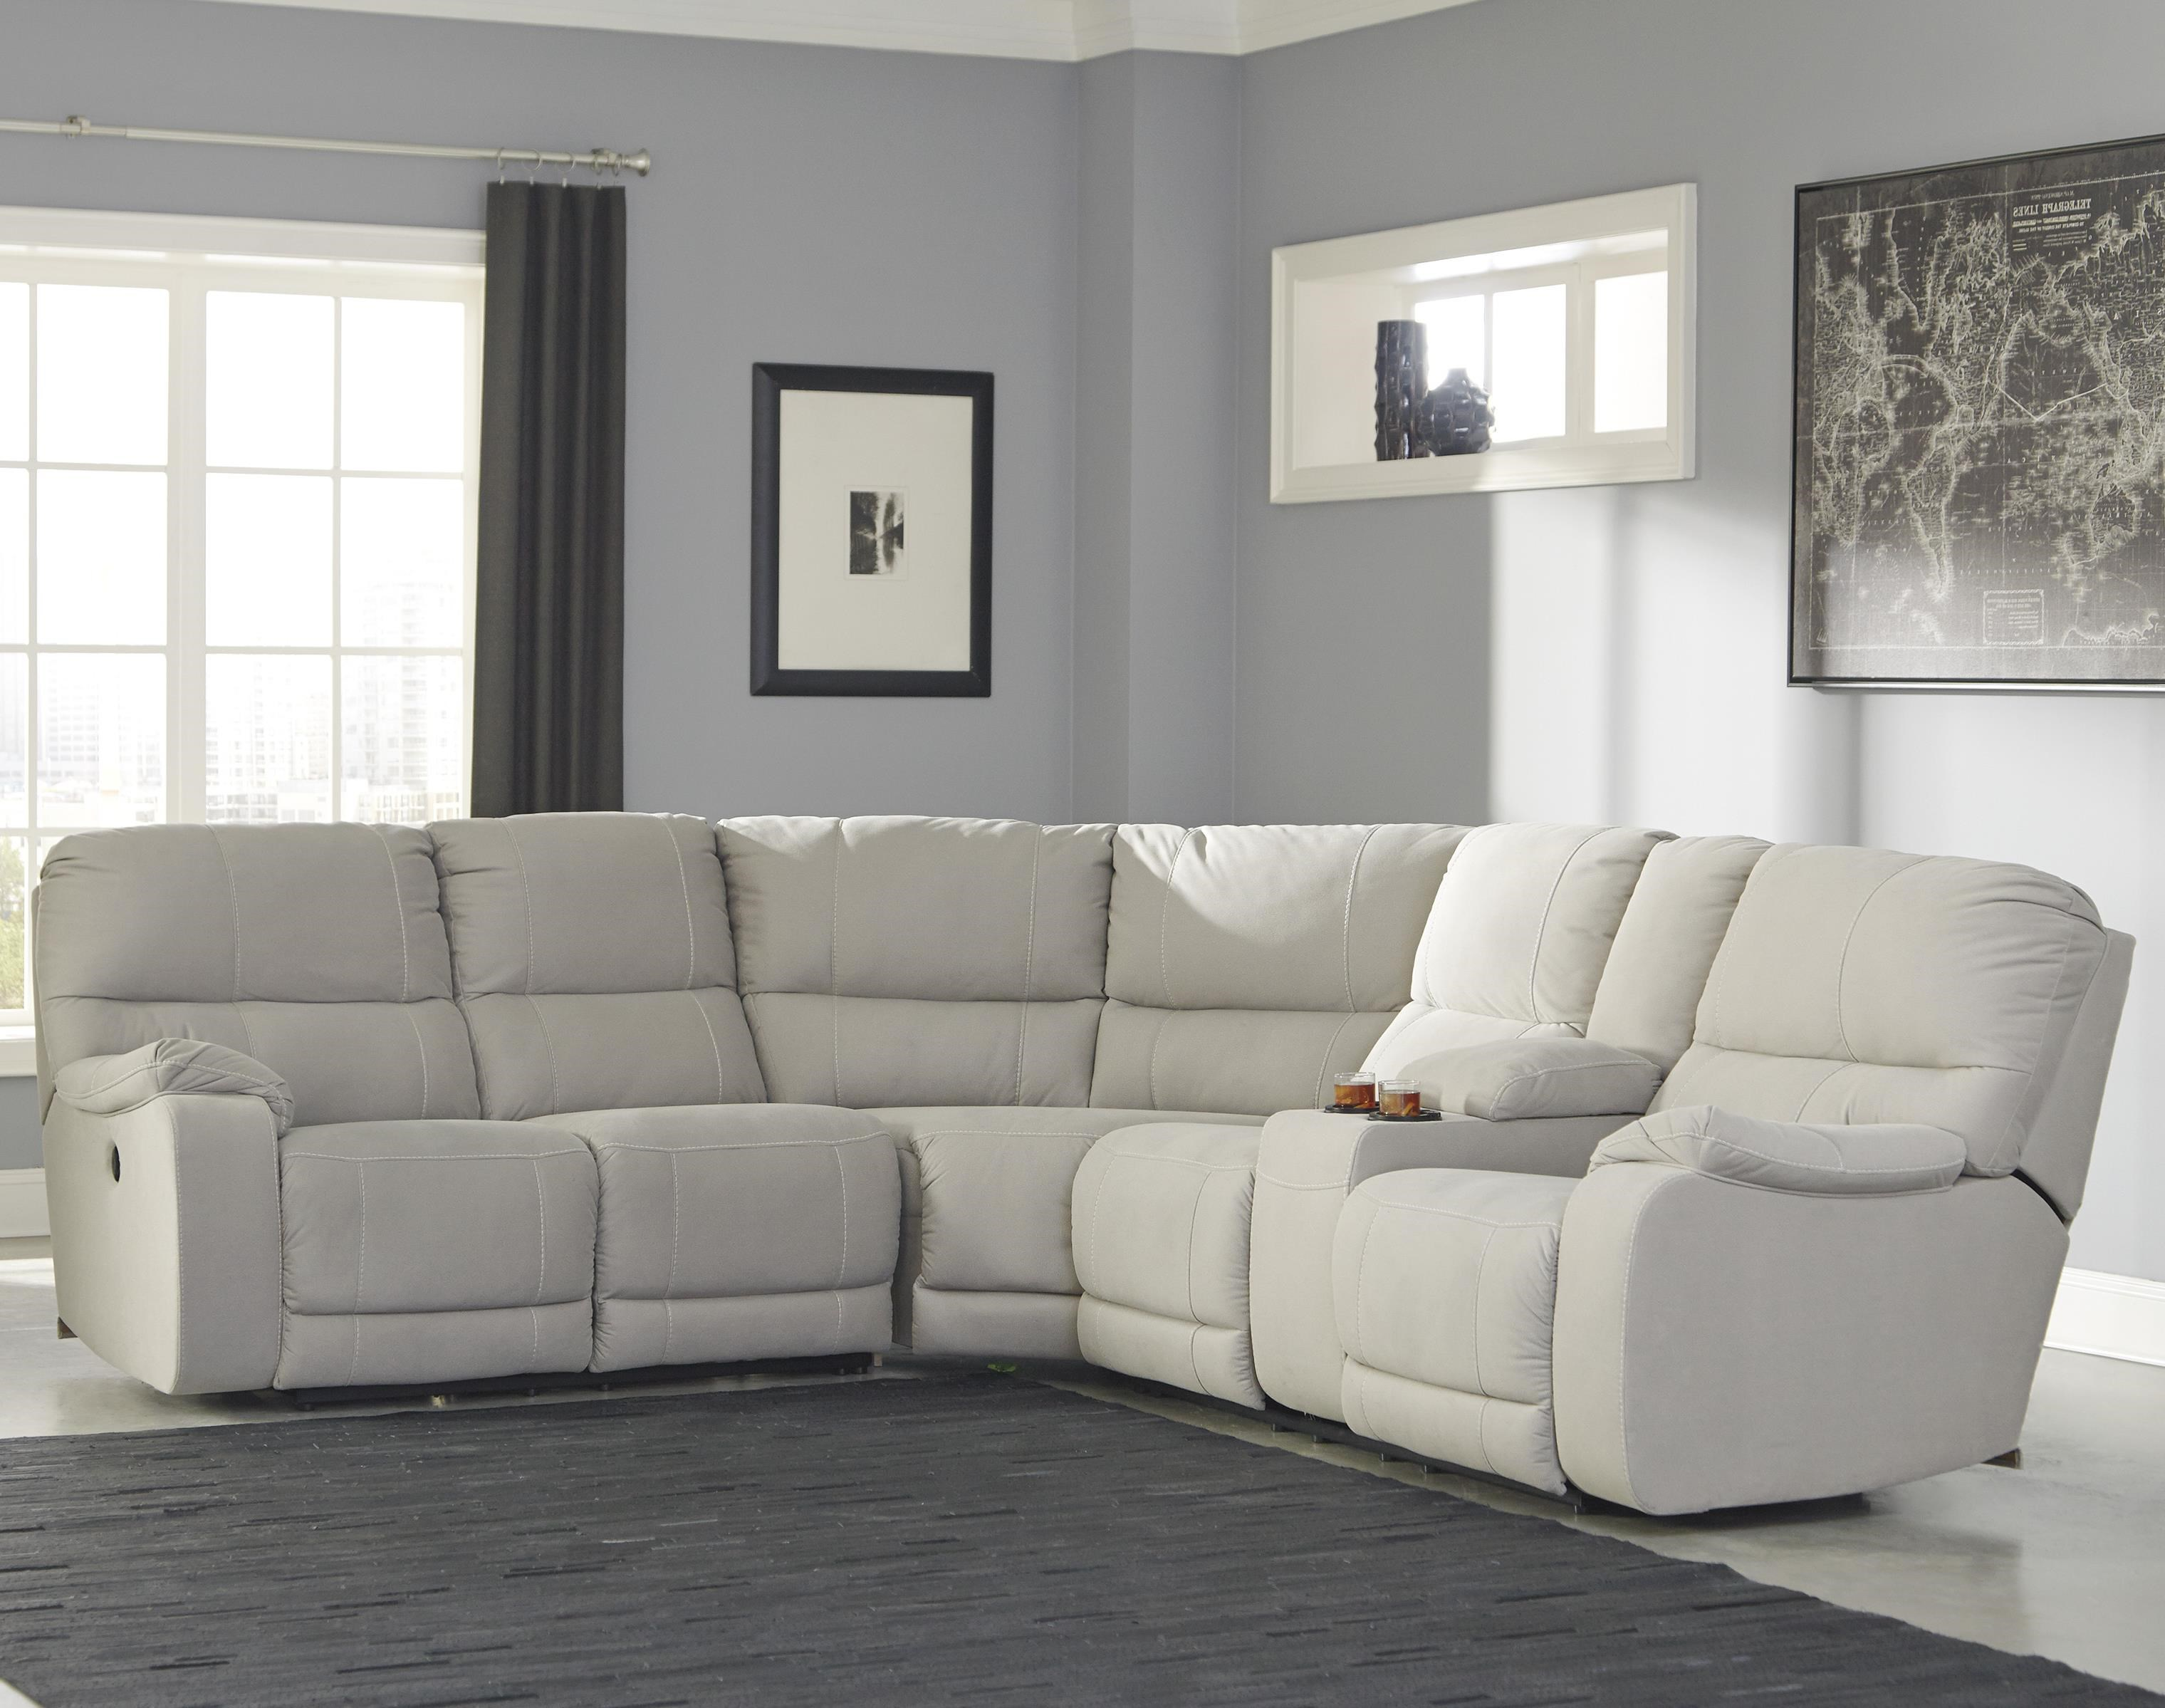 Benchcraft Bohannon Power Reclining Sectional with Console  sc 1 st  Pilgrim Furniture City : sectional power recliner - Sectionals, Sofas & Couches